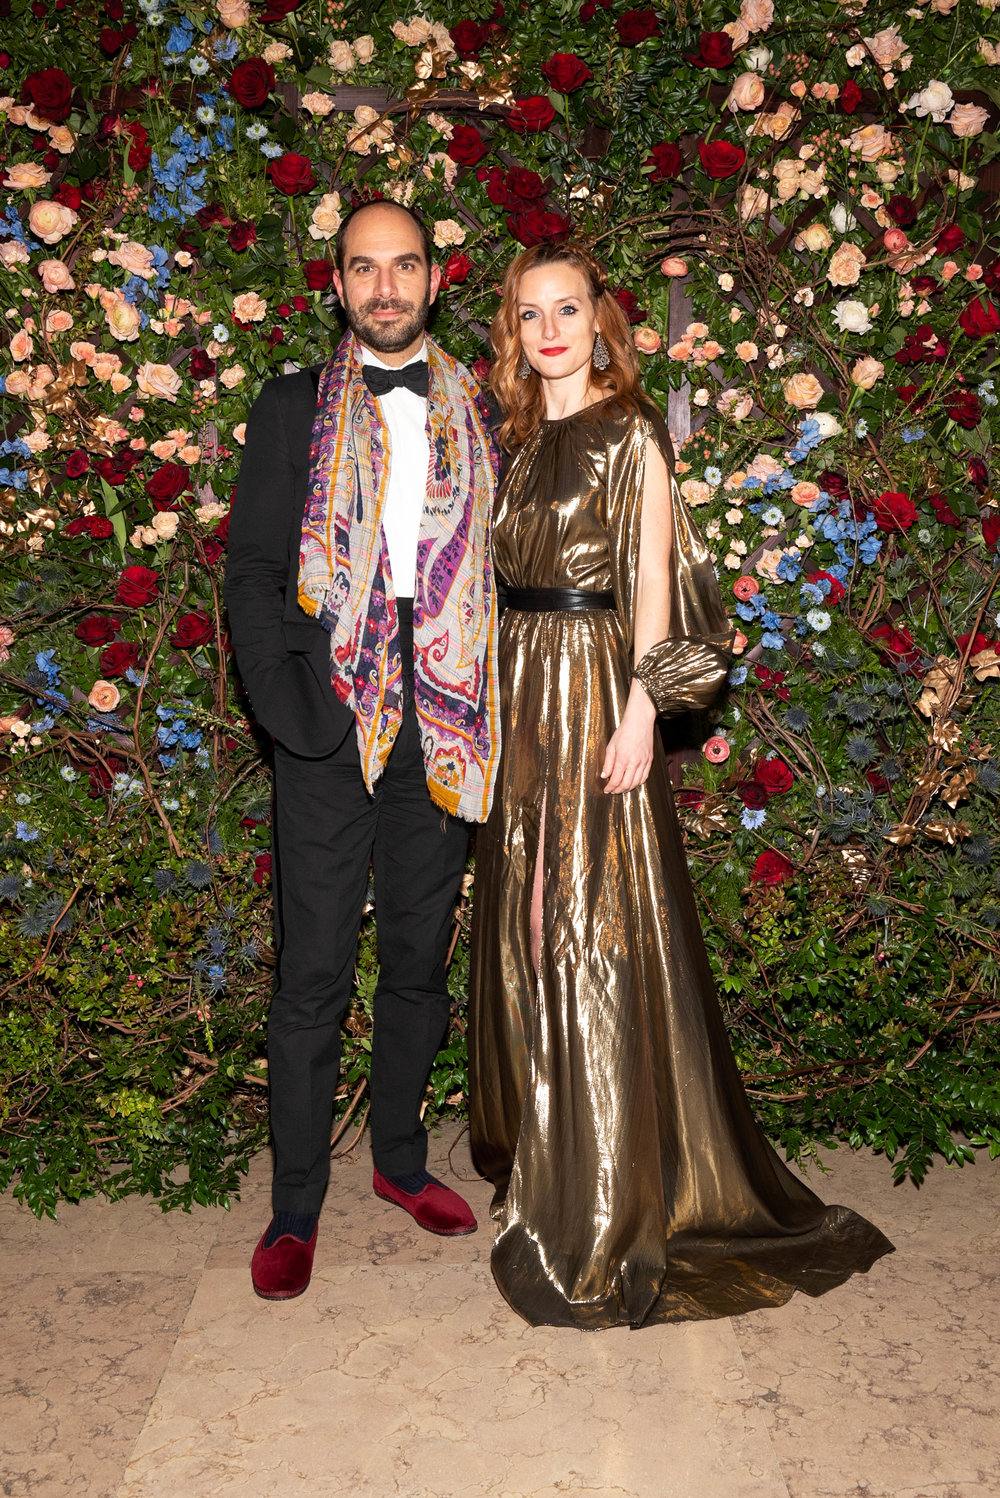 Xavier F. Salomon and Alexis Light attend The Frick Collection's 20th Annual Young Fellows Ball at 1 East 70th Street on Thursday, March 21st, 2019. Photography, Courtesy of The Frick Collection.